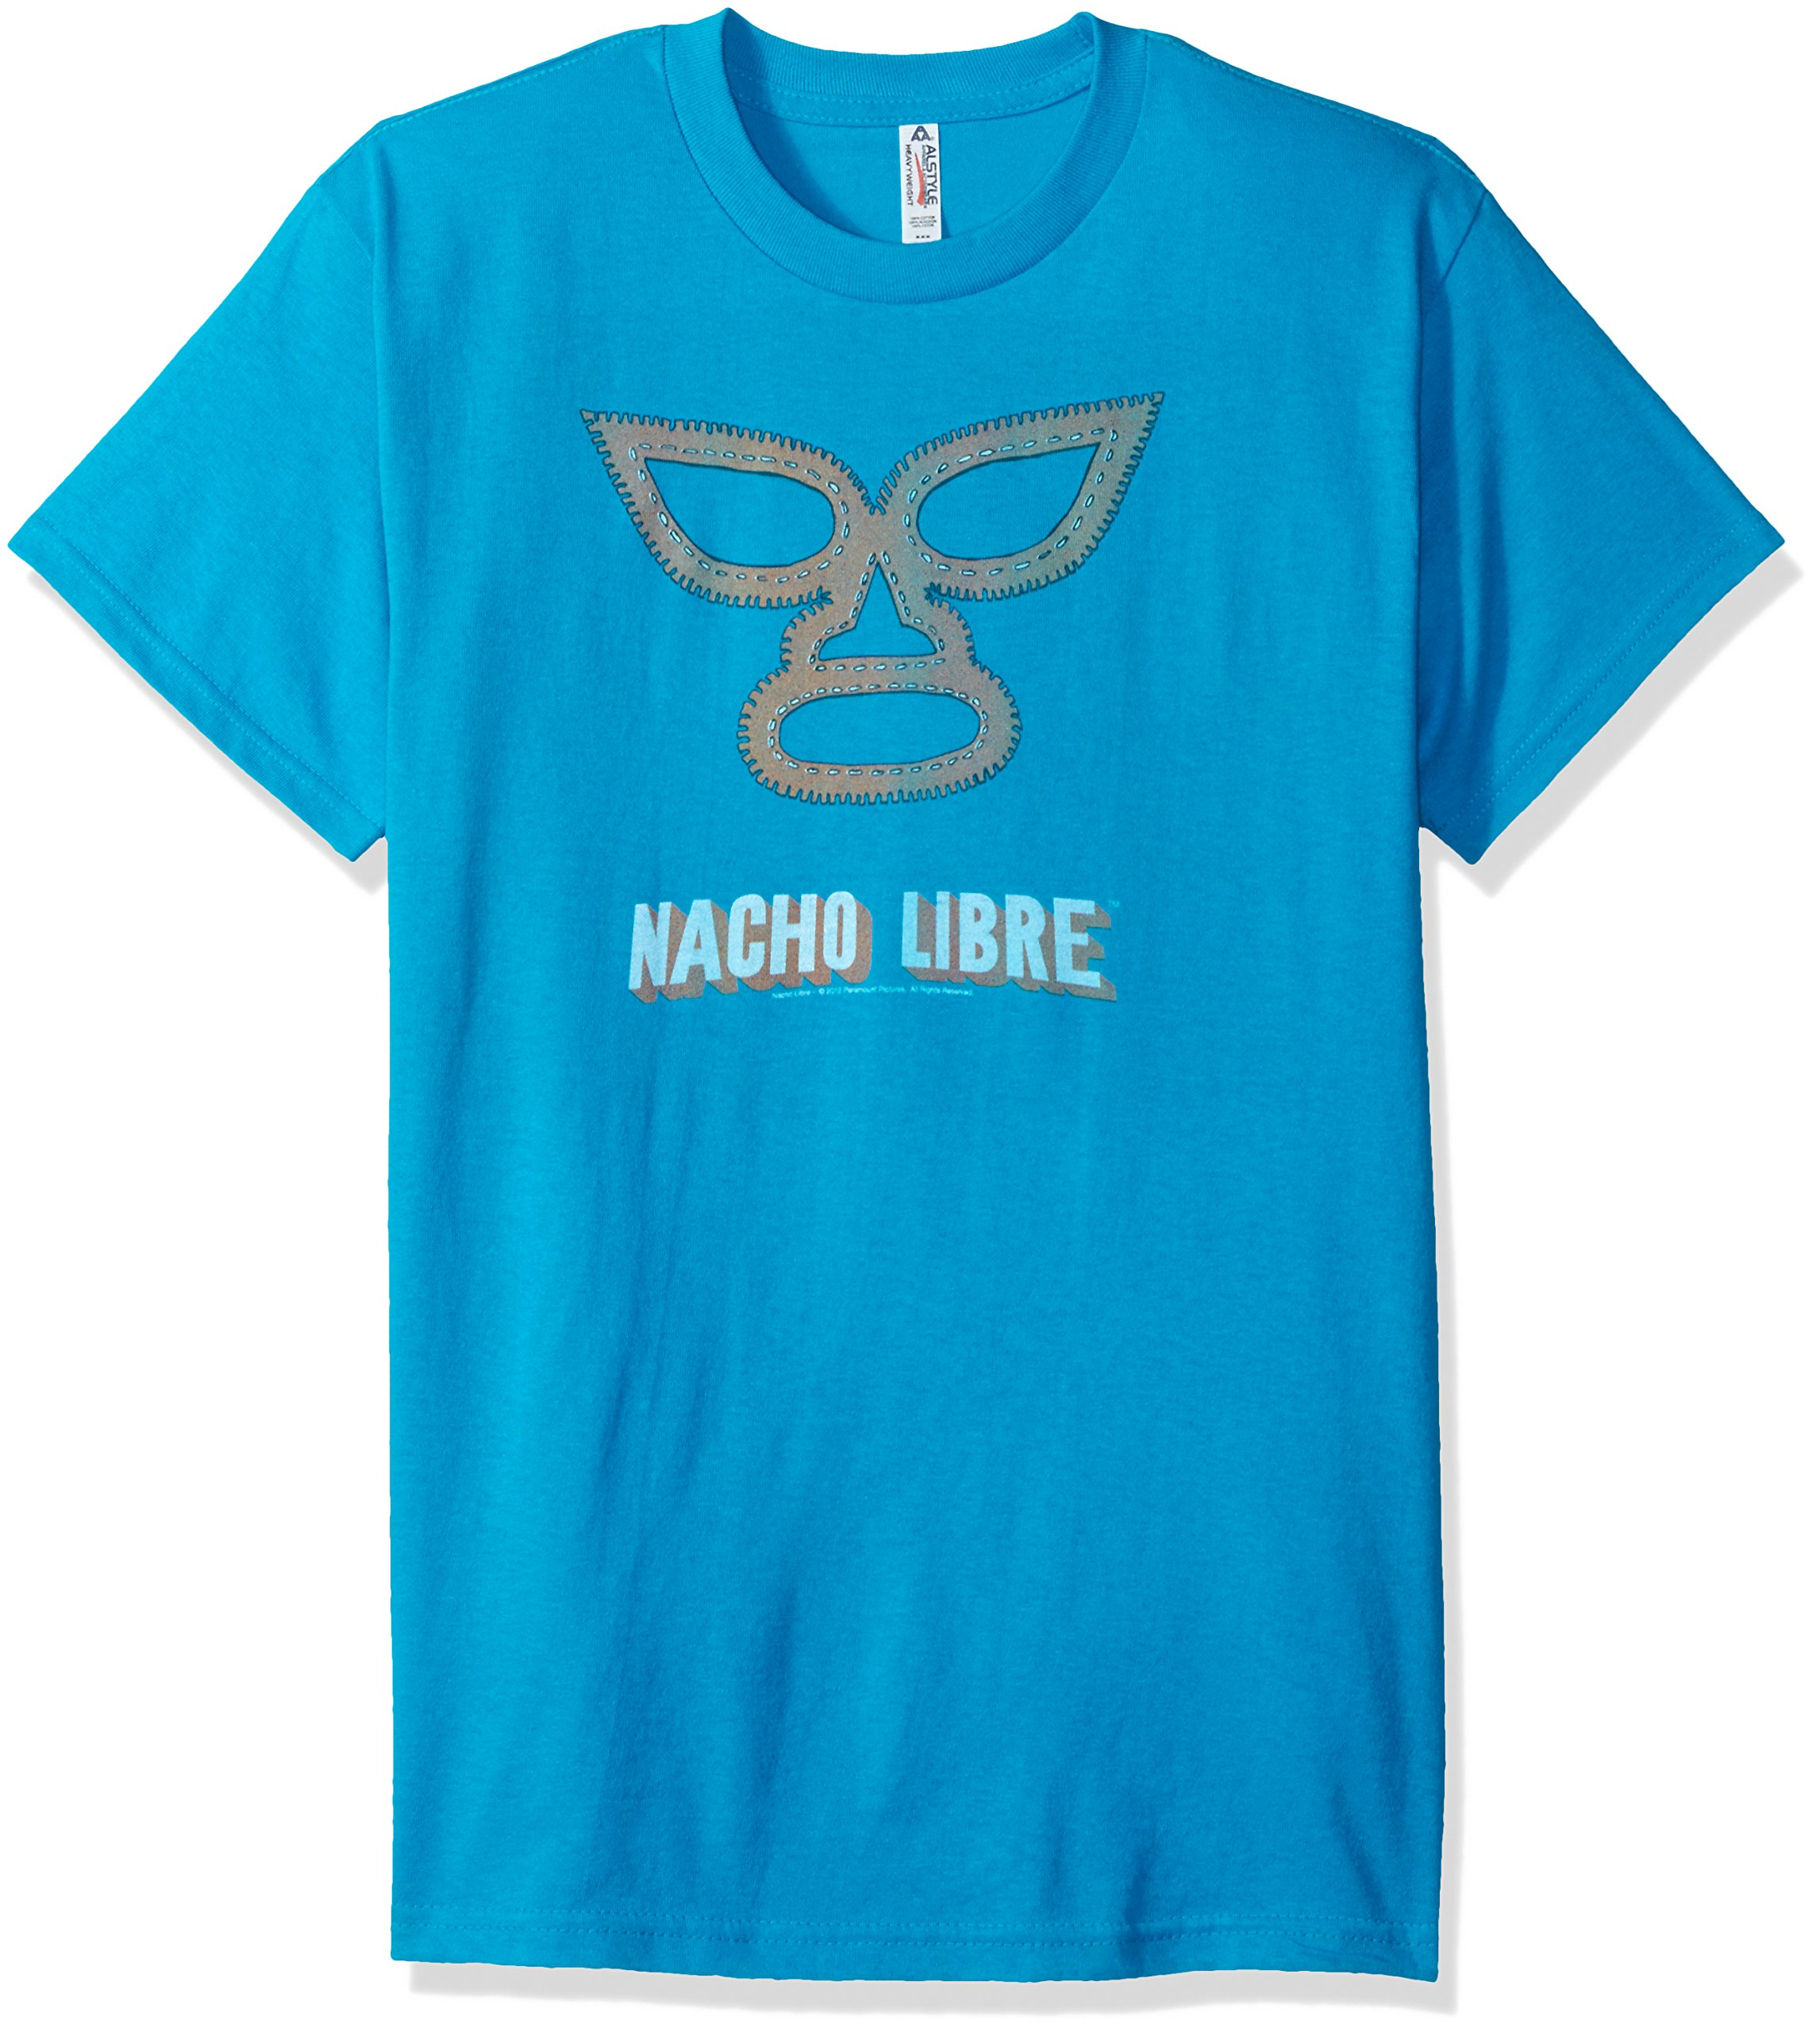 Trevco Men's Nacho Libre Short Sleeve T-Shirt, Turquoise, Large